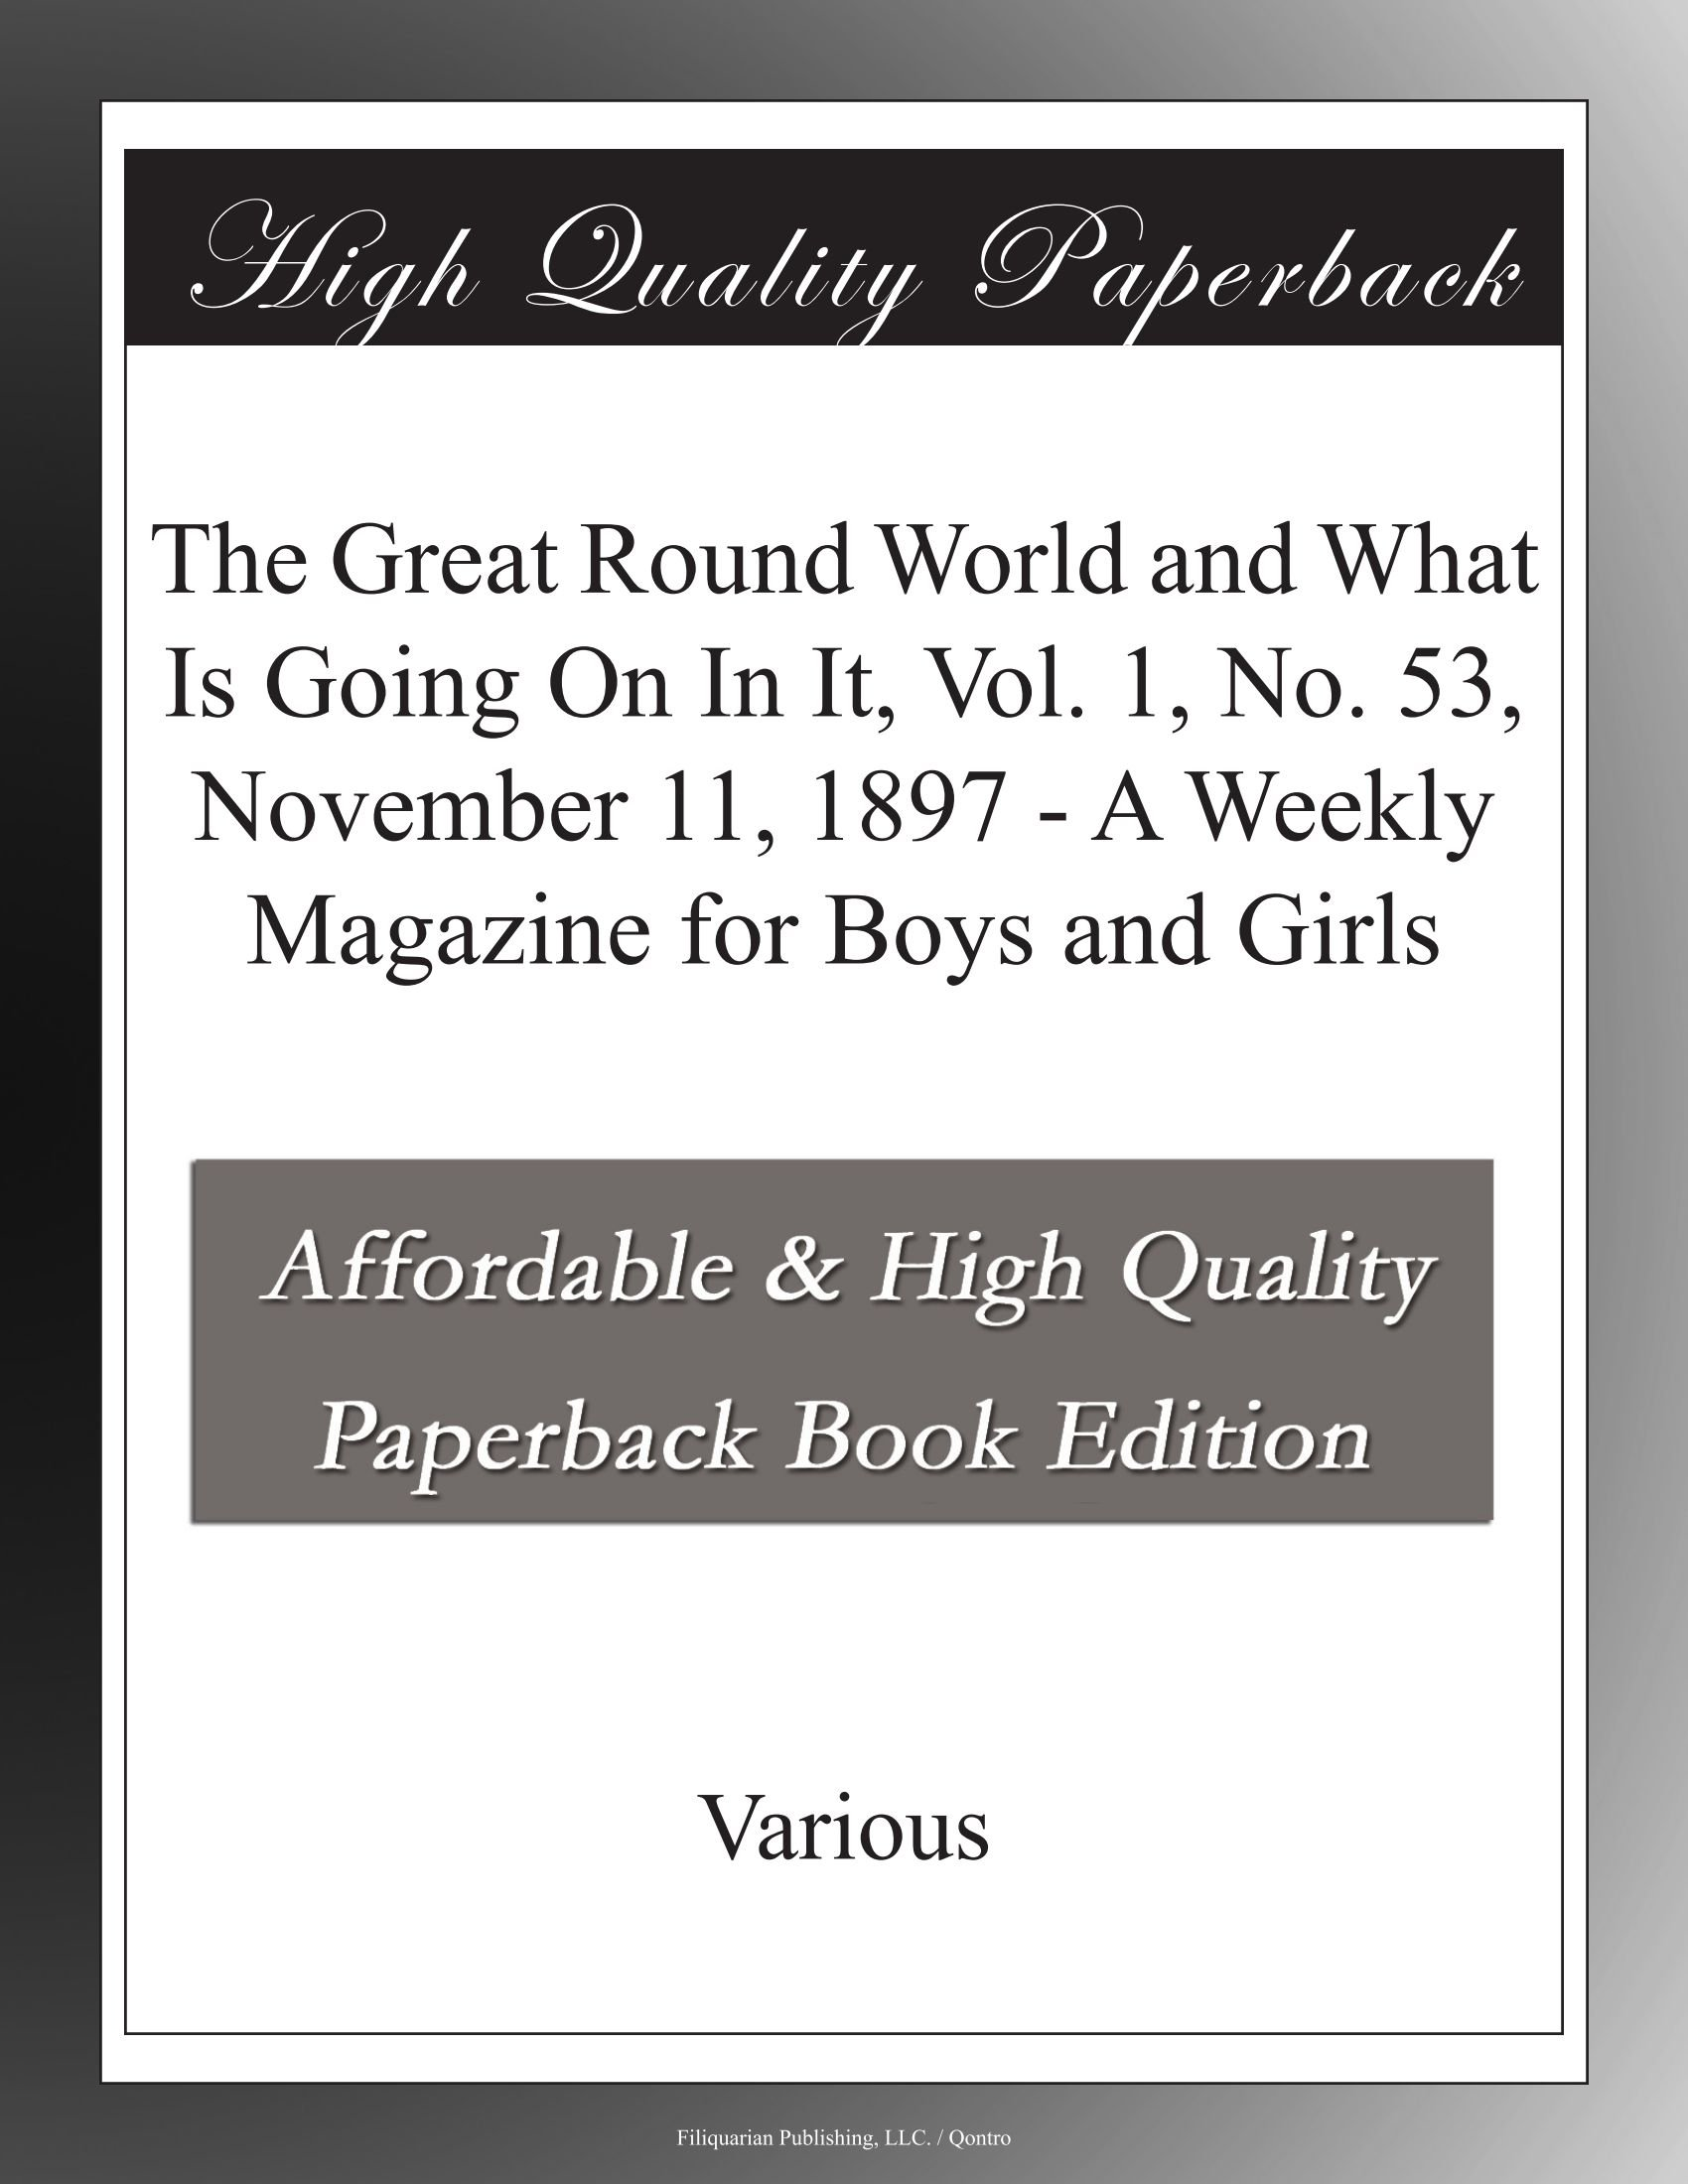 Read Online The Great Round World and What Is Going On In It, Vol. 1, No. 53, November 11, 1897 - A Weekly Magazine for Boys and Girls PDF